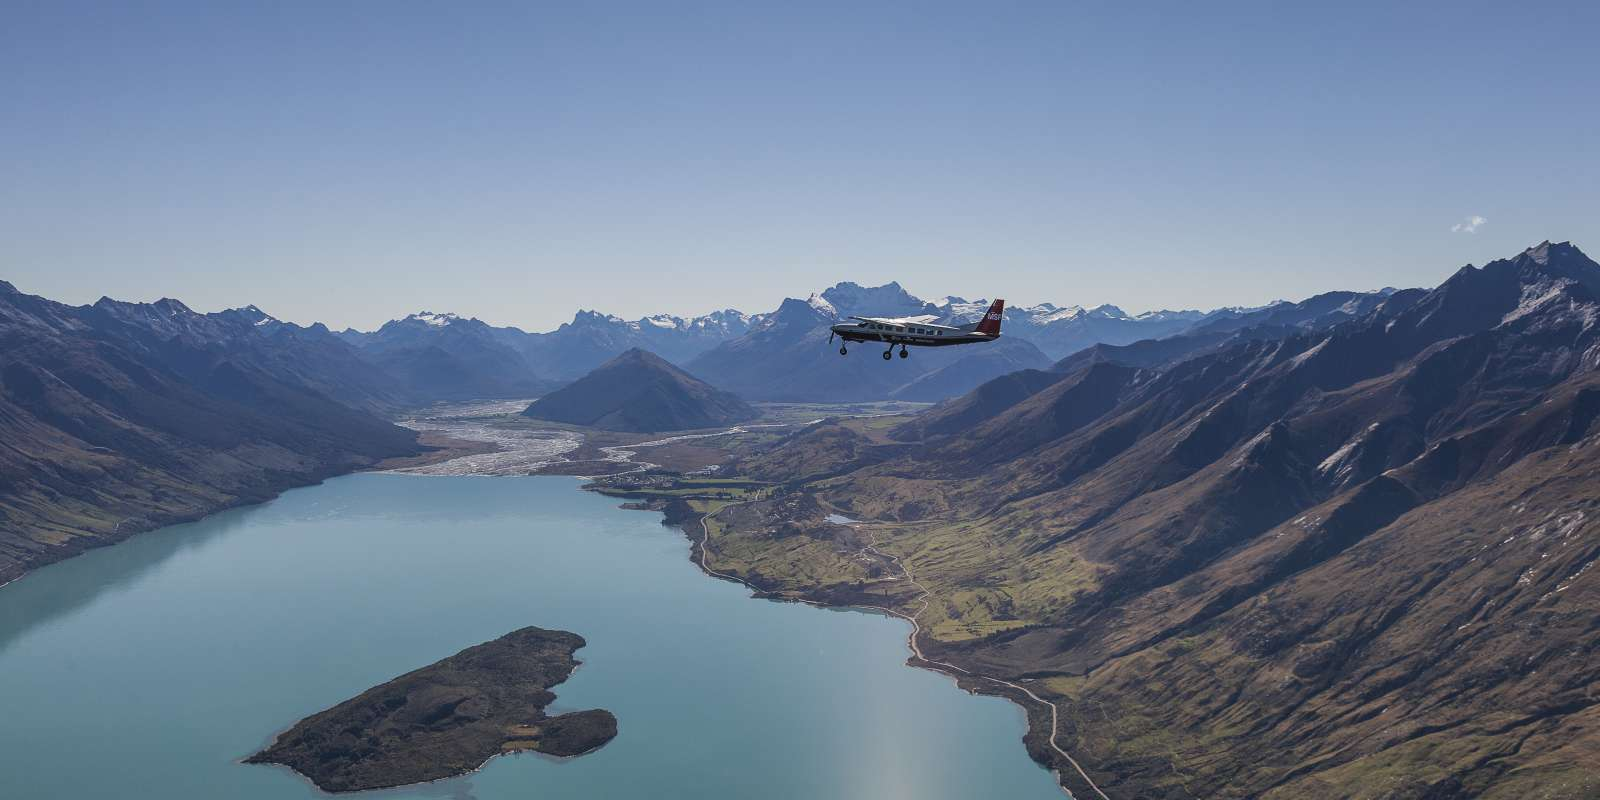 Scenic aeroplane flight over Glenorchy